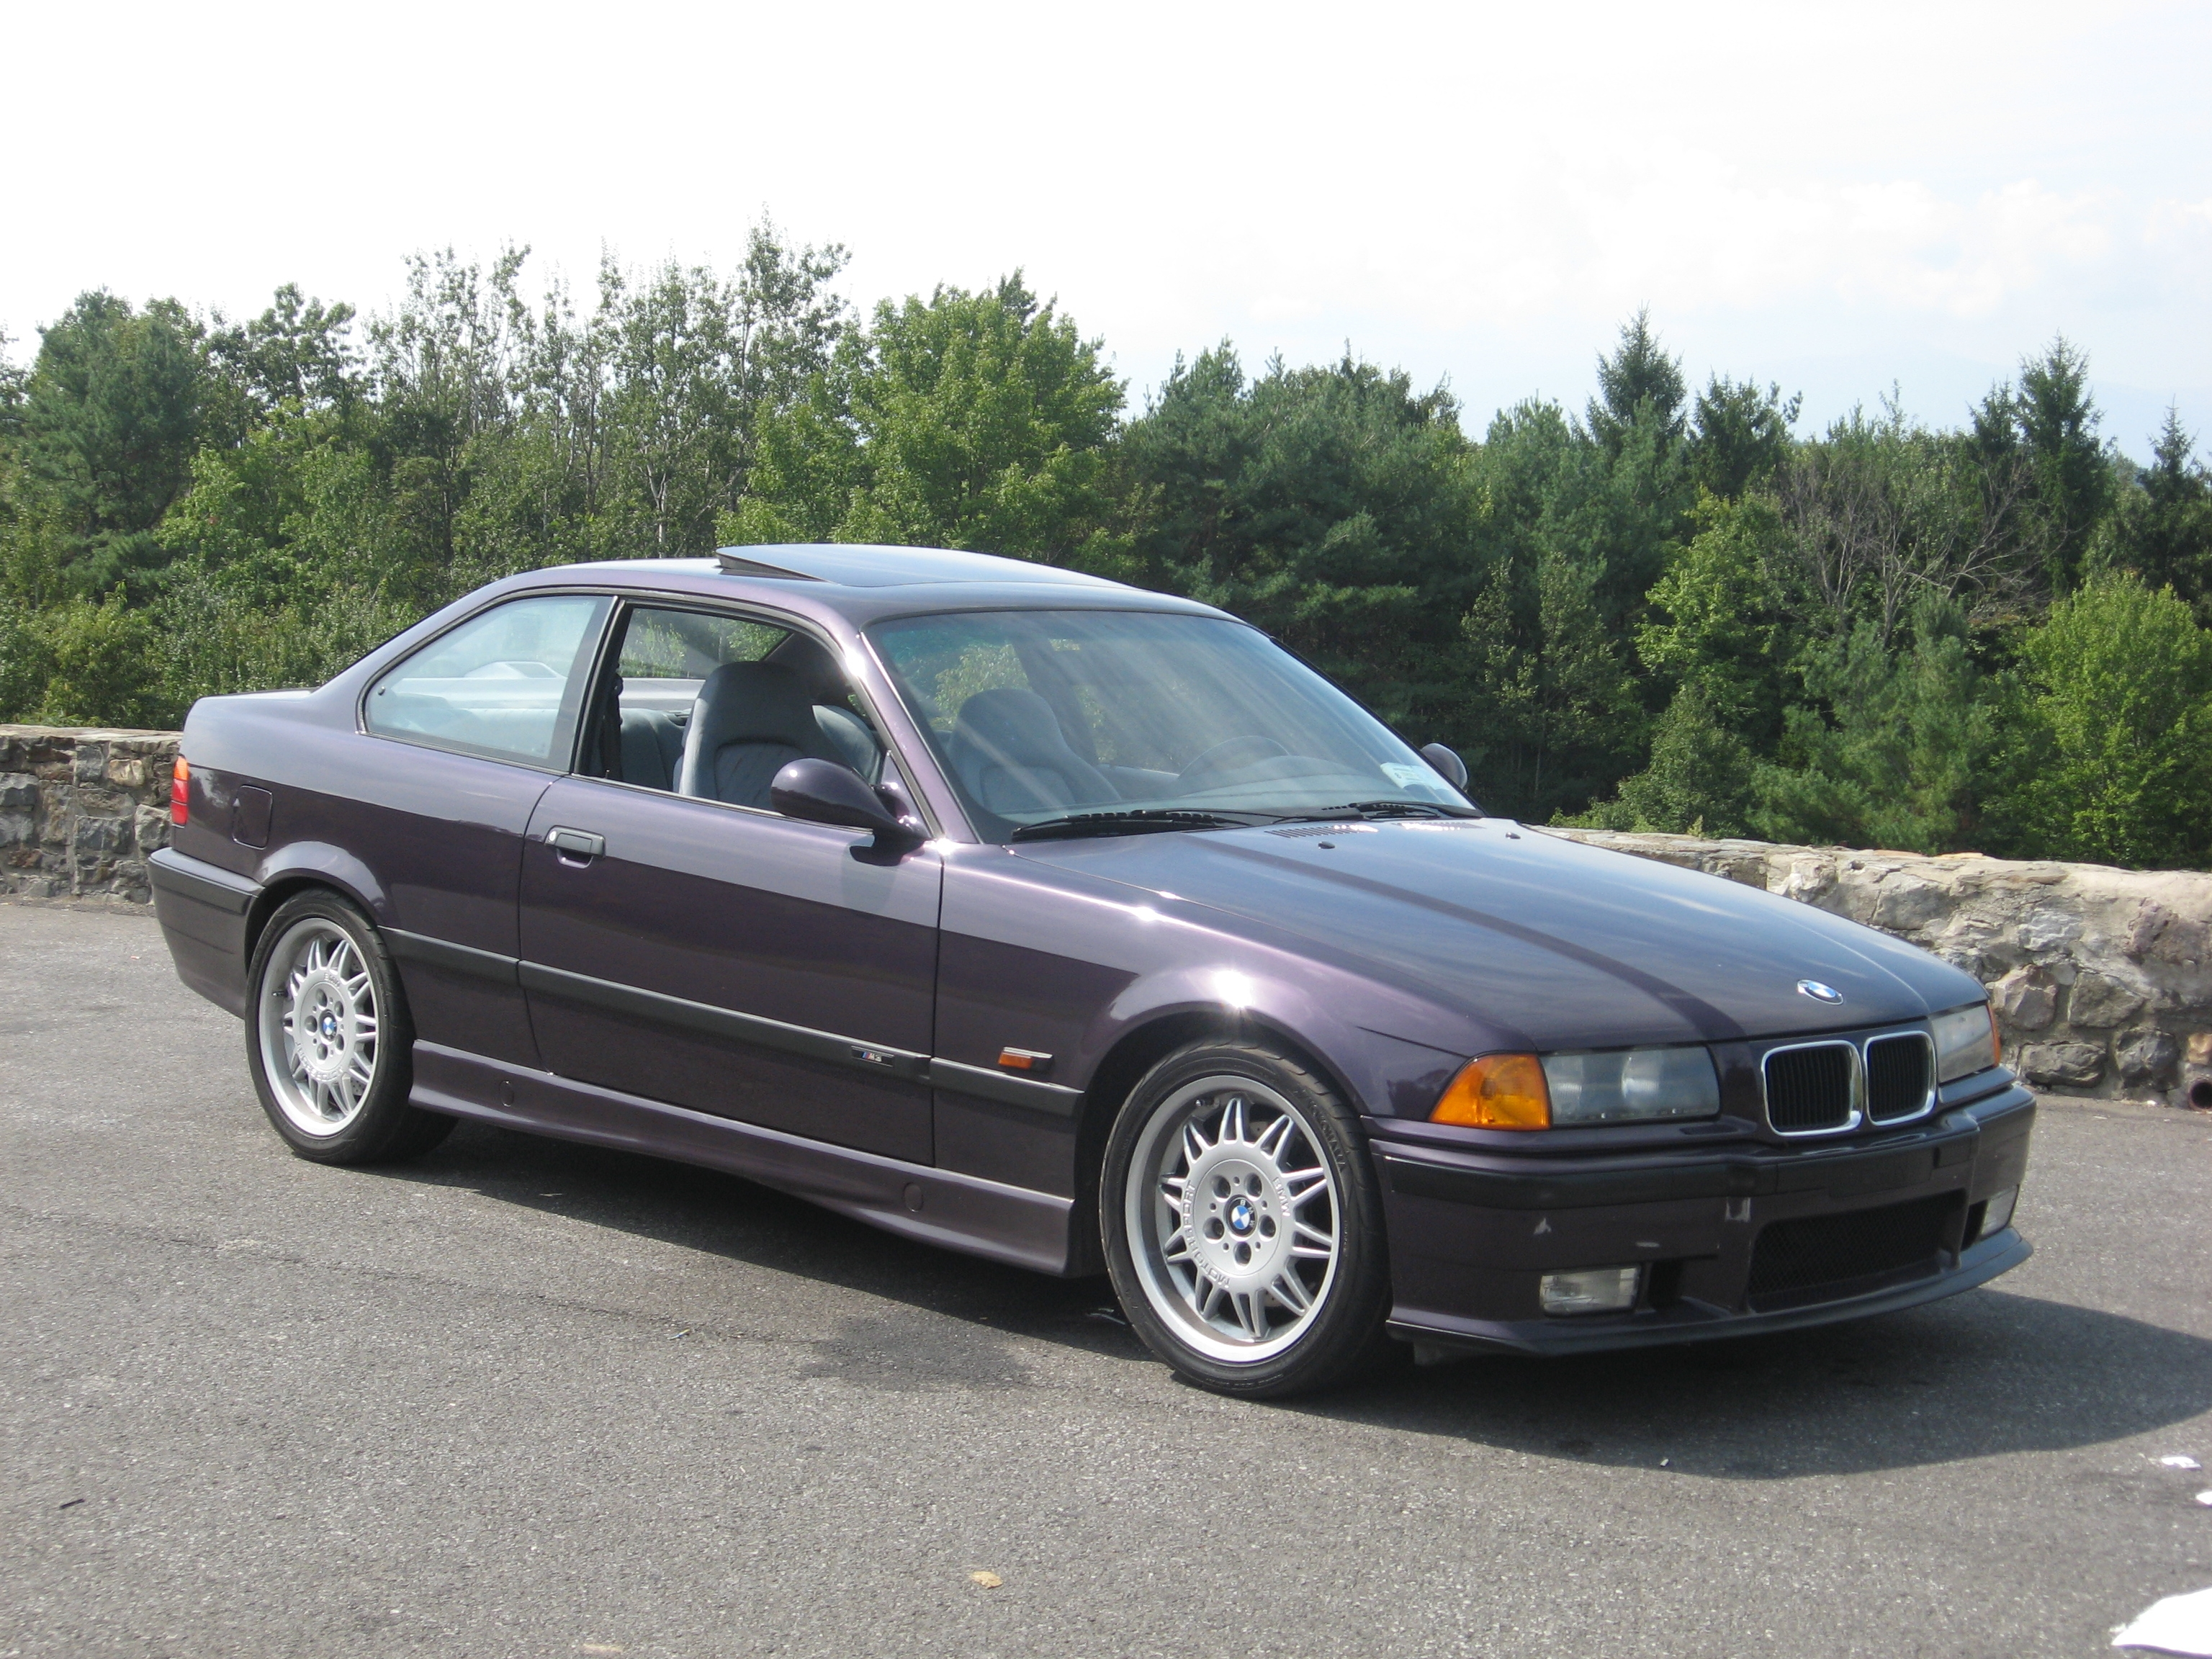 95DaytonaM3Girl 1995 BMW M3 14186991